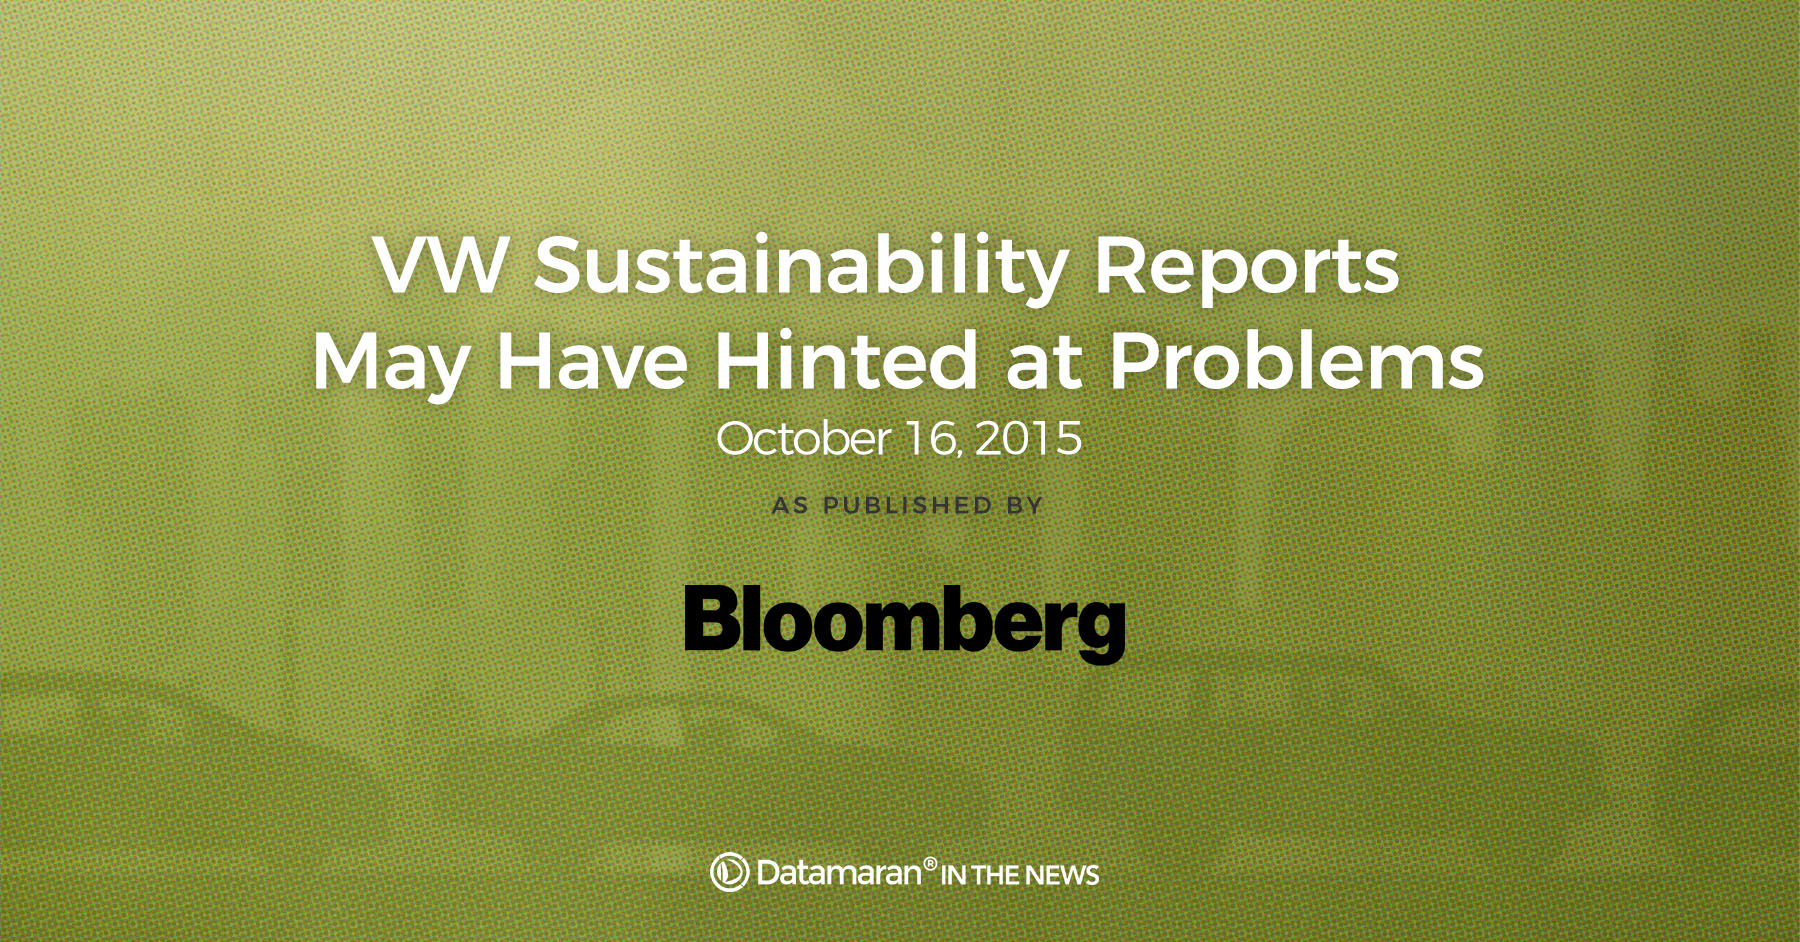 VW sustainability reports